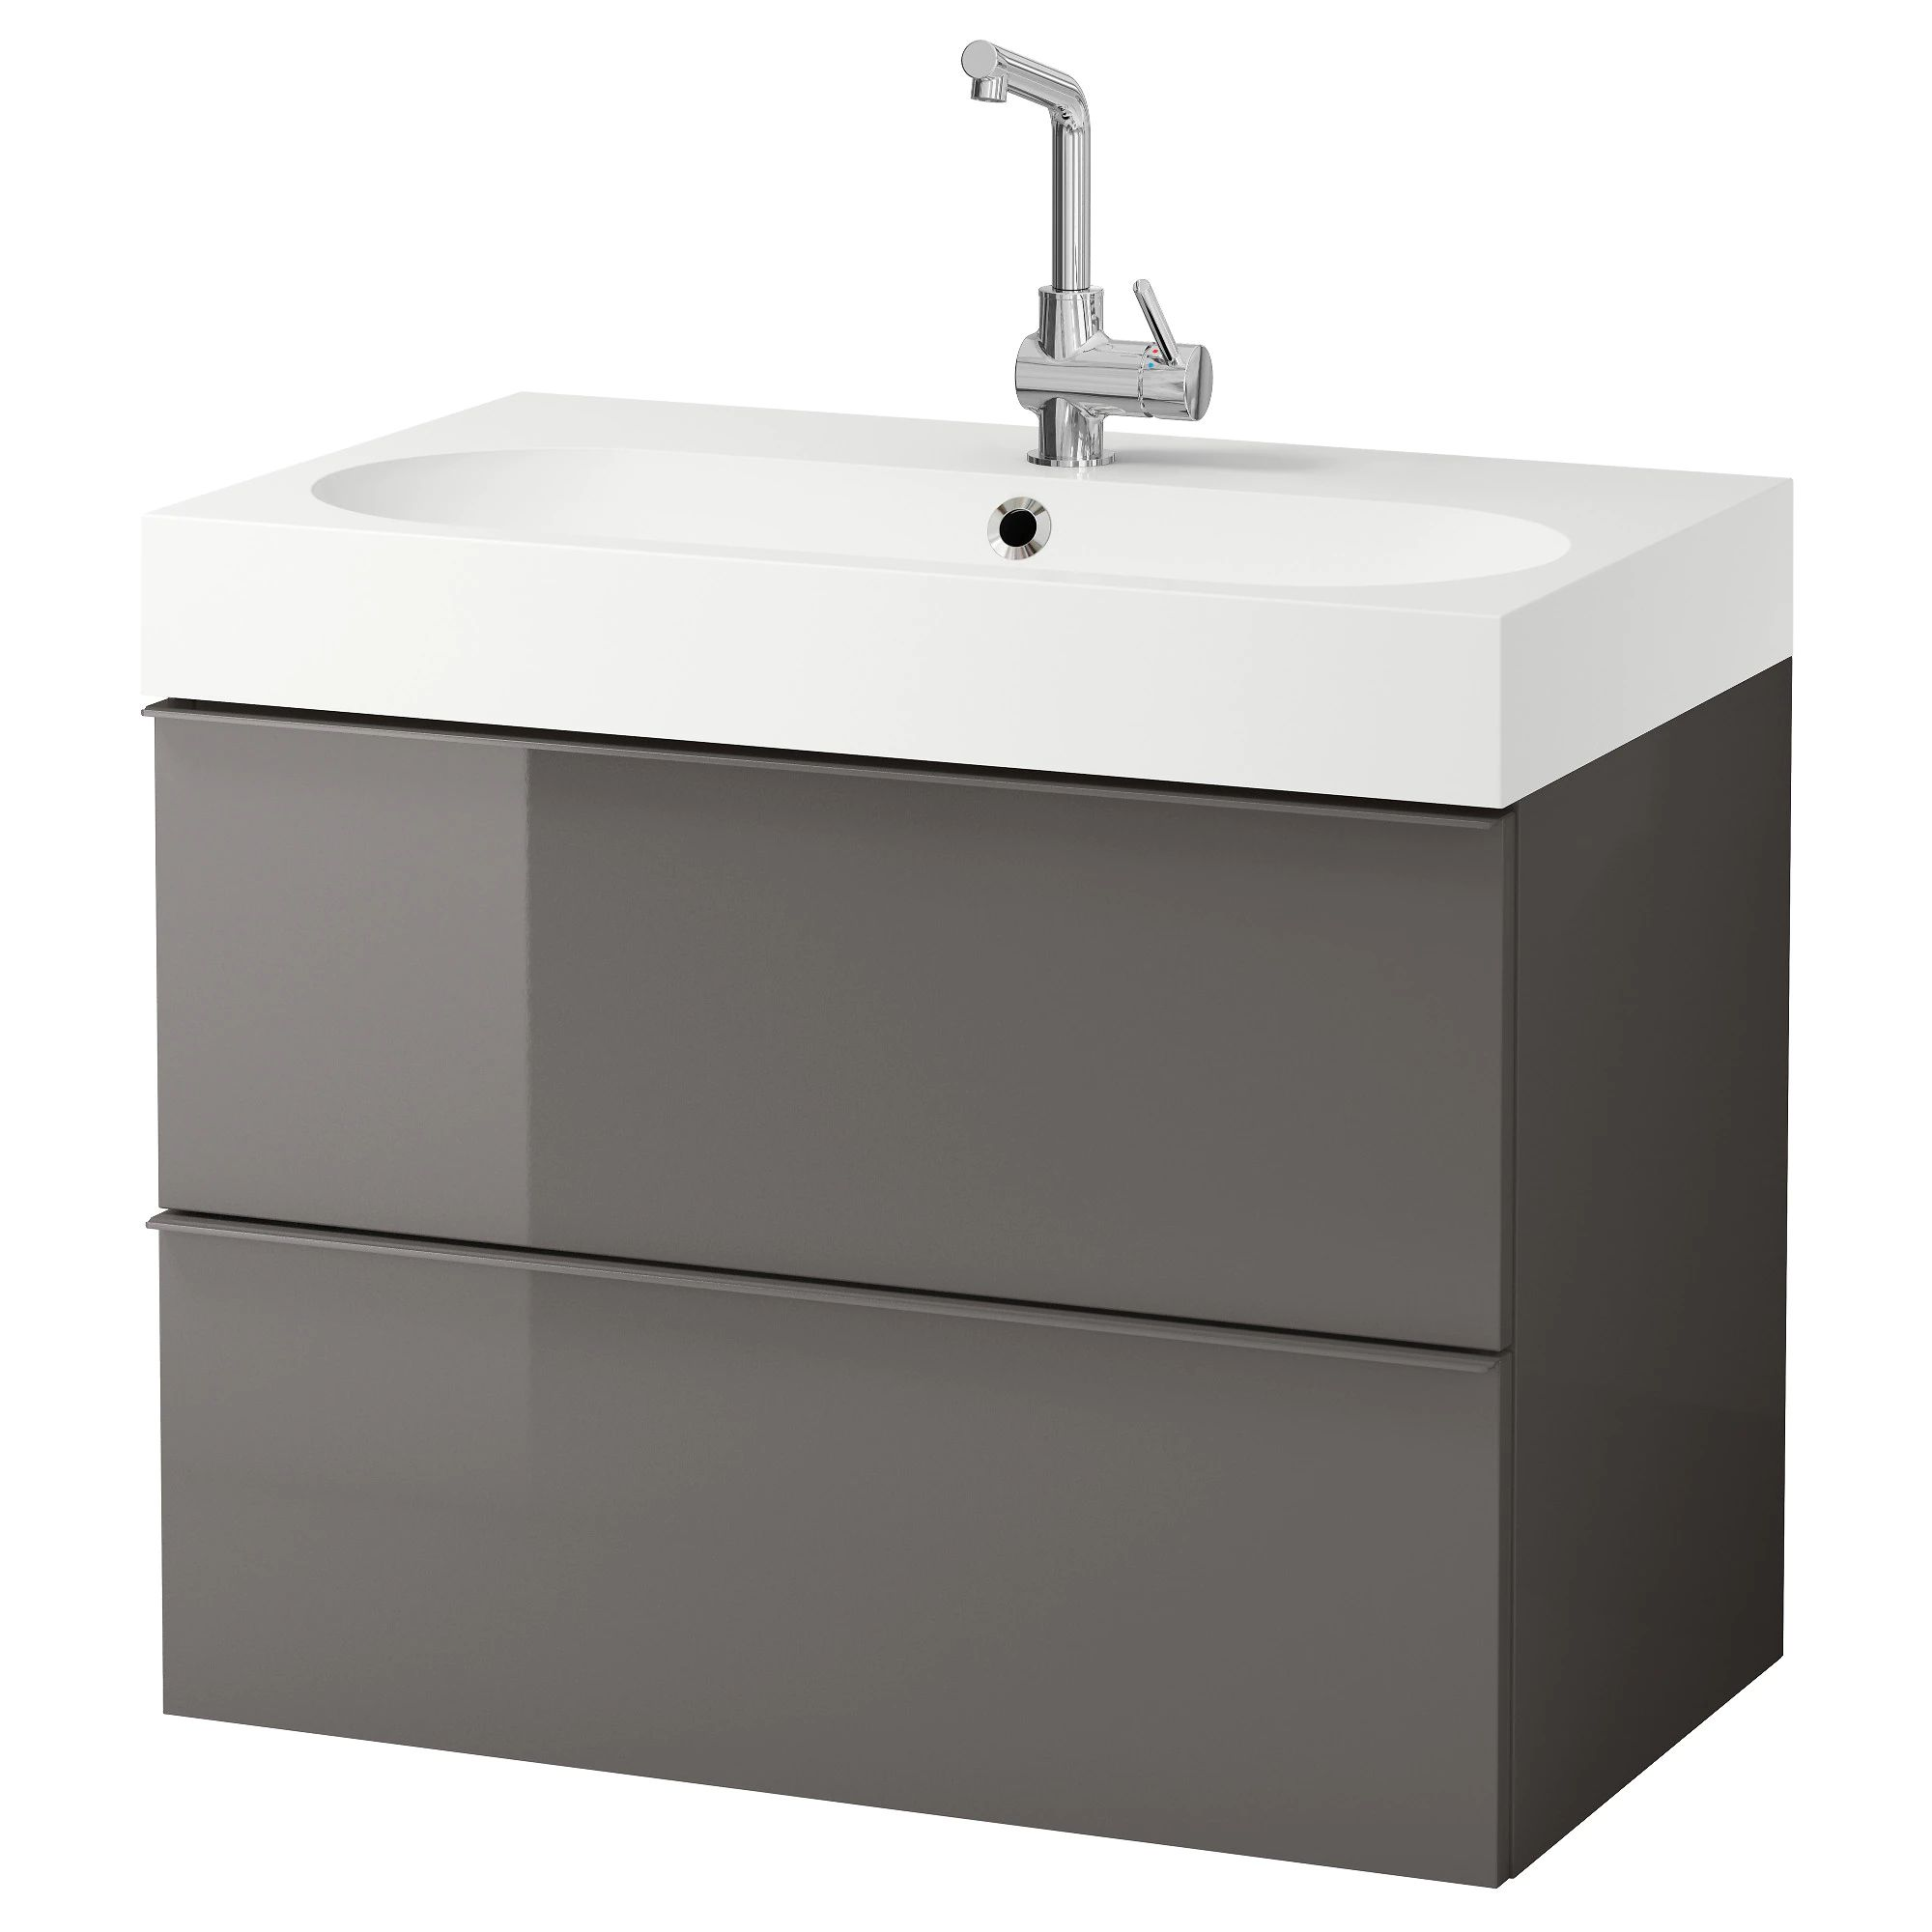 Godmorgon br viken sink cabinet with 2 drawers gray high gloss gray width 32